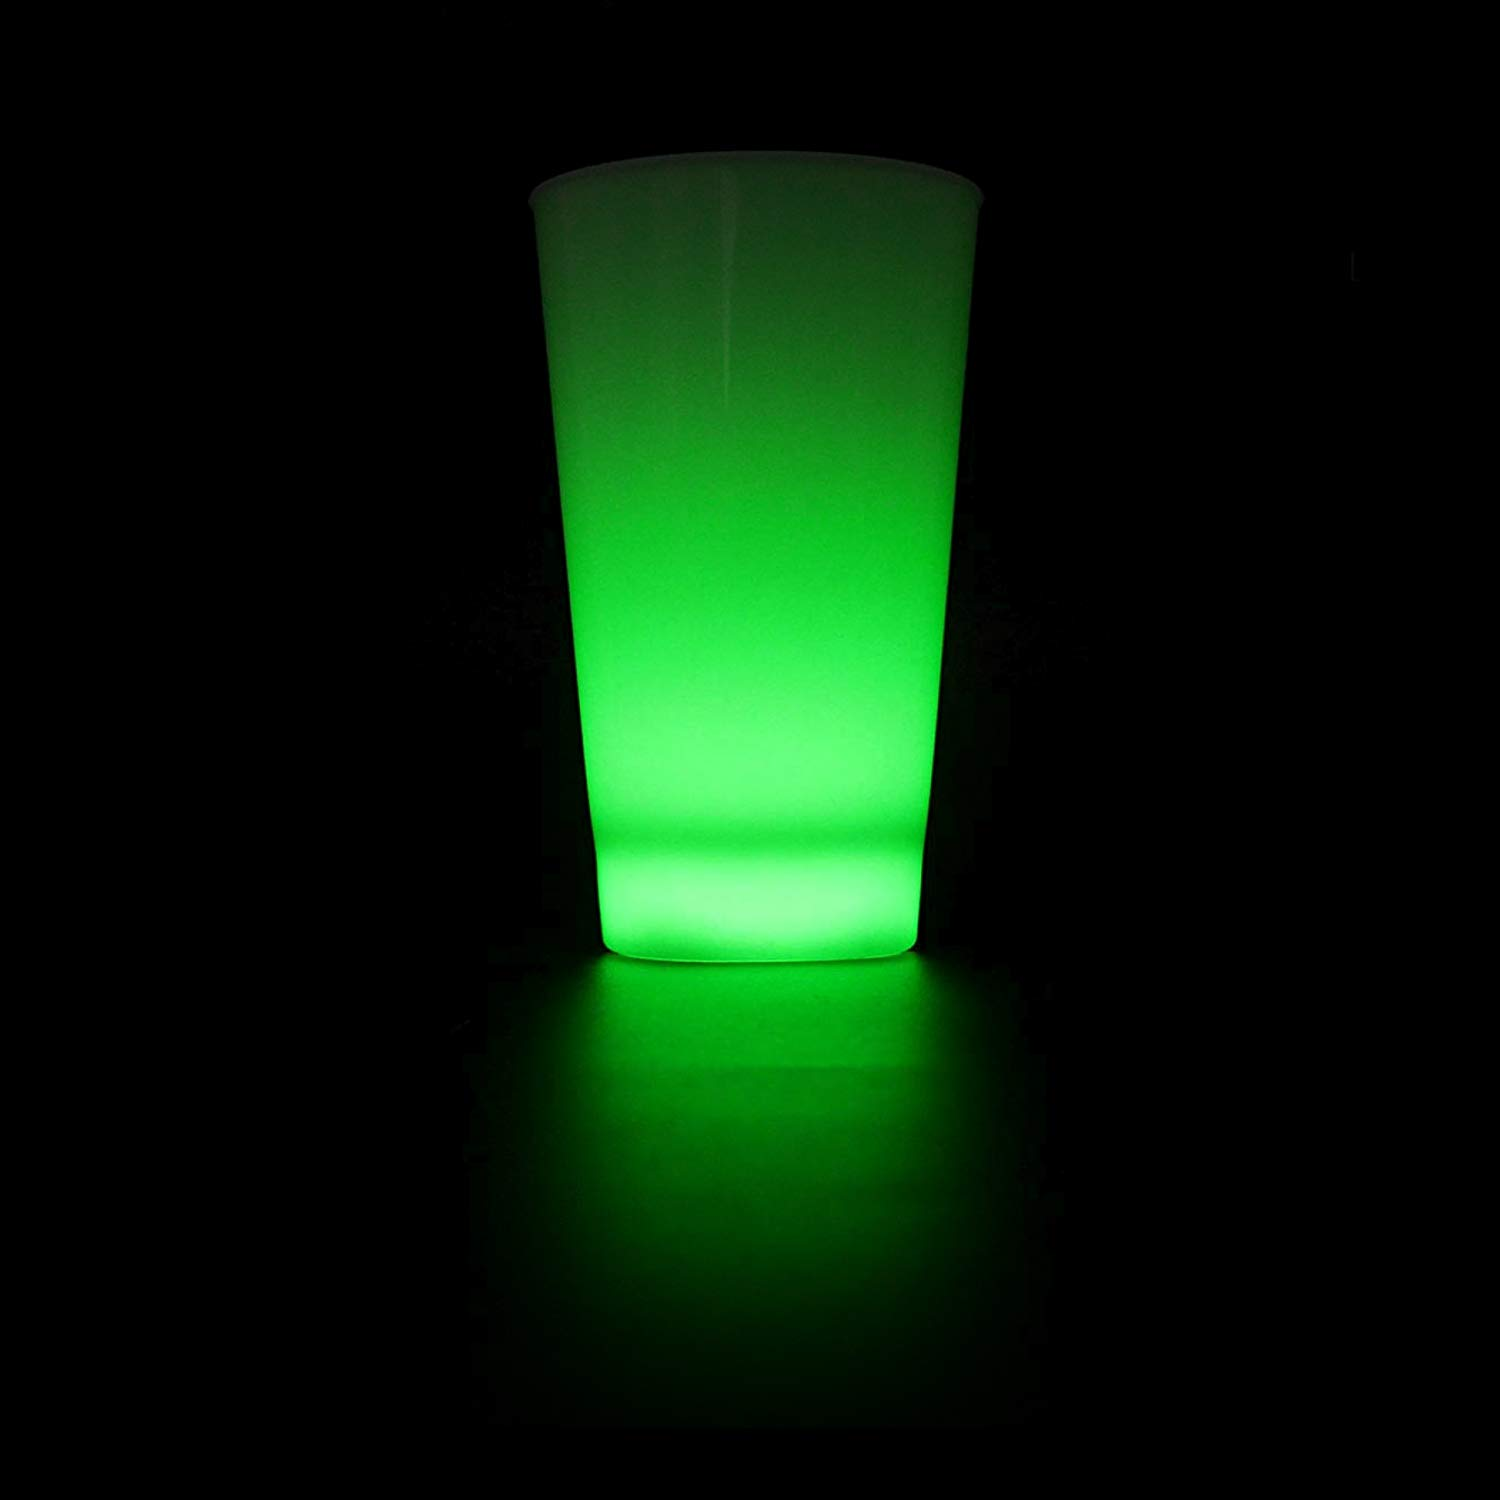 Fun Central 16 oz LED Cup - Light Up Drinking Glass Party Supplies for St. Patrick's Day, Events & Parties - Green